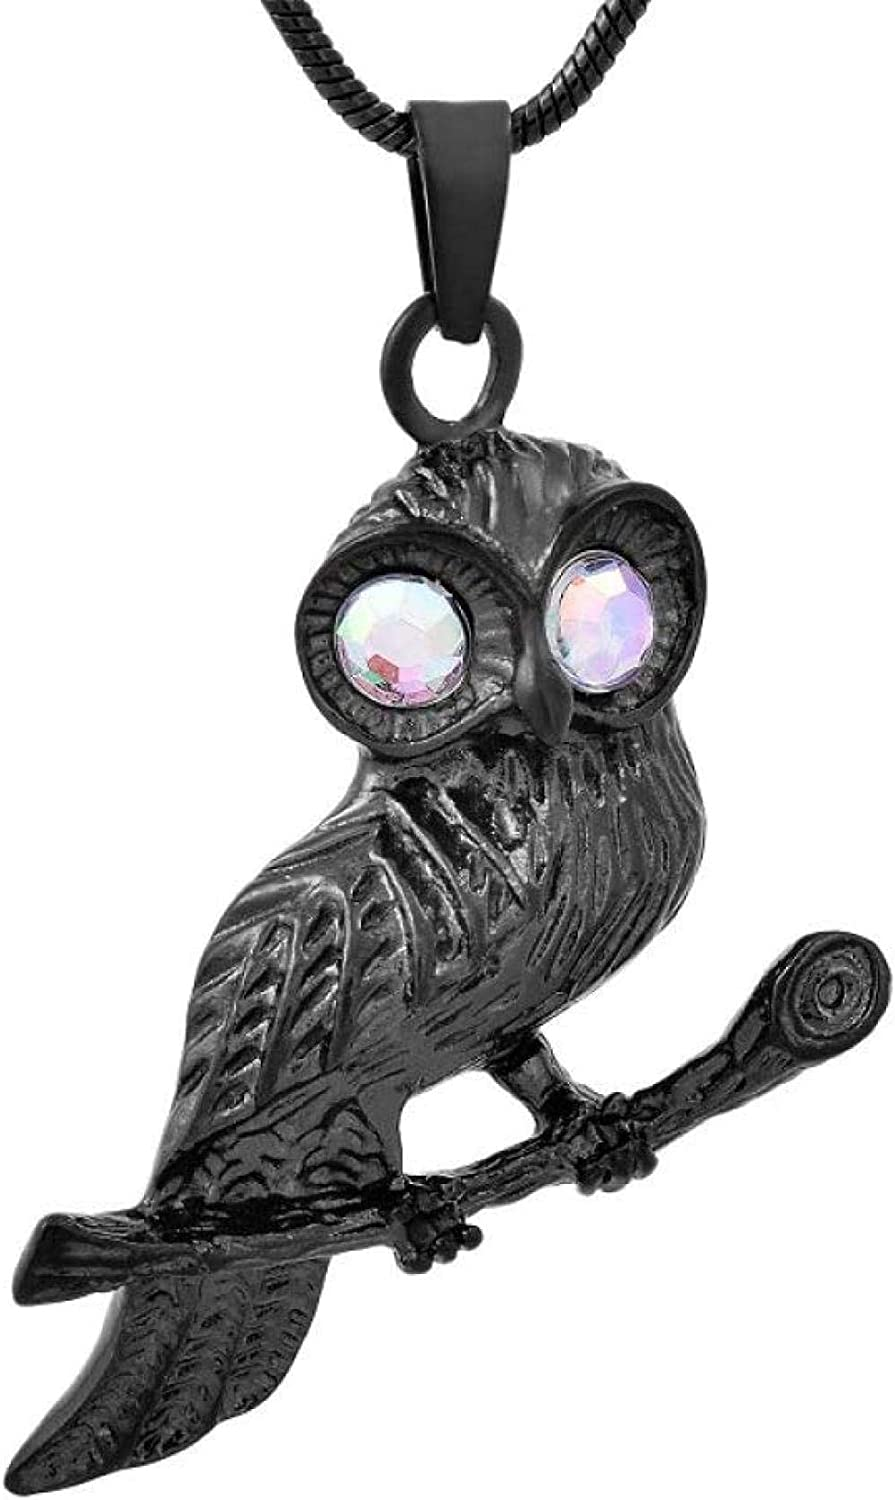 Ashes Chain Cremation Memorial Necklace for Ashes Cremation Jewelry Color Crystal Eye Black Owl Pendant Locket Heart Memorial Ash Holder Necklaces for Pet Human